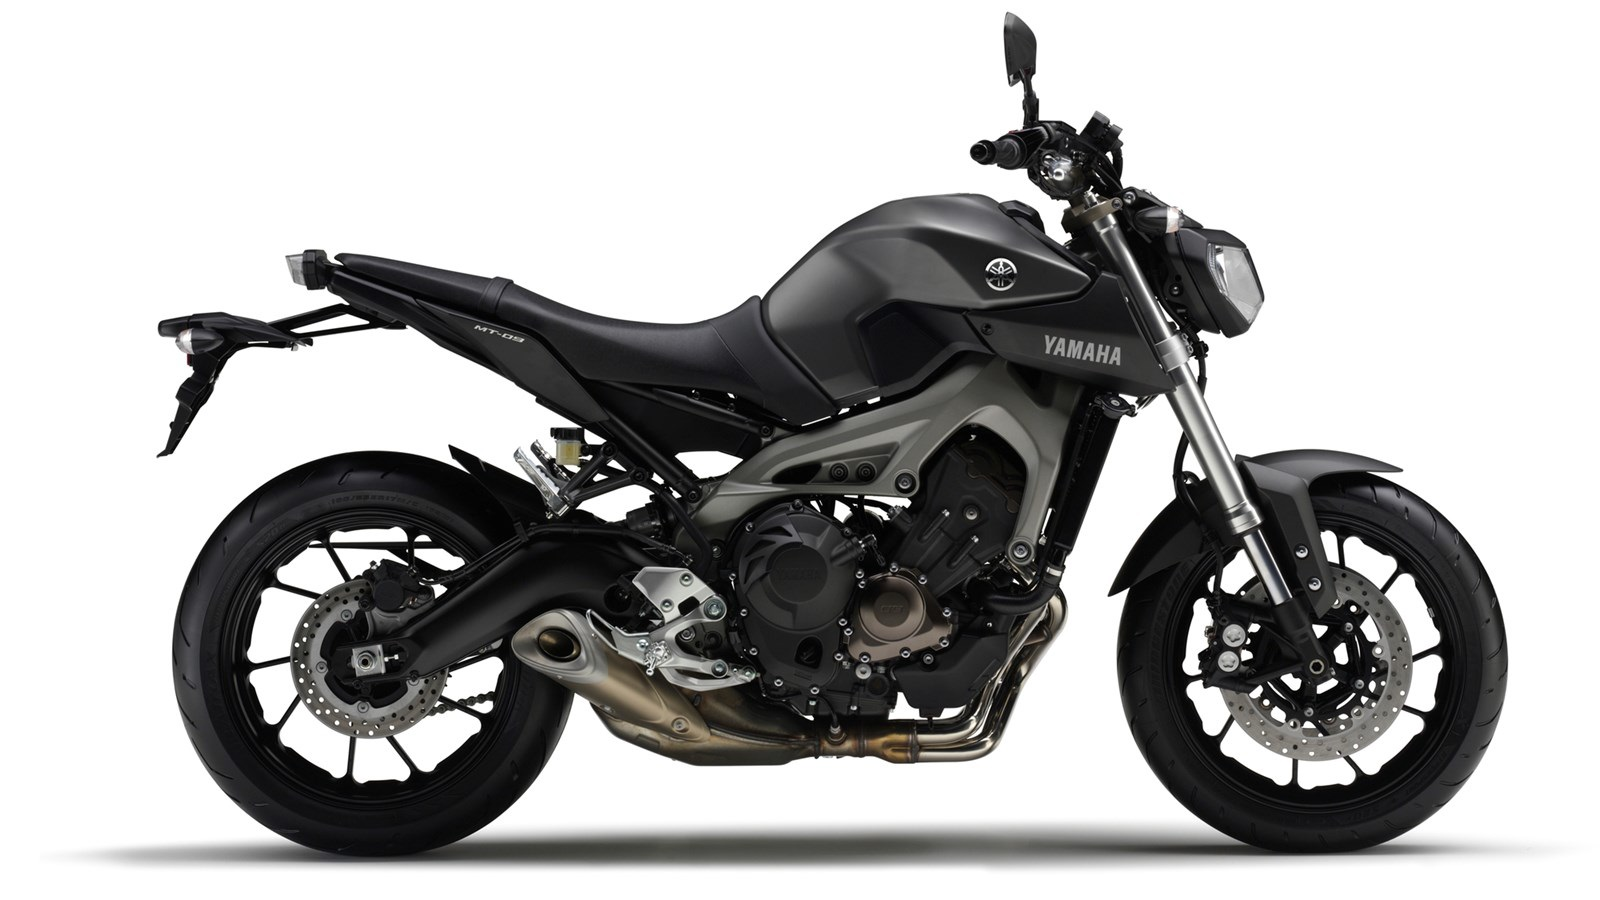 MT-09 or FZ-09: you decide